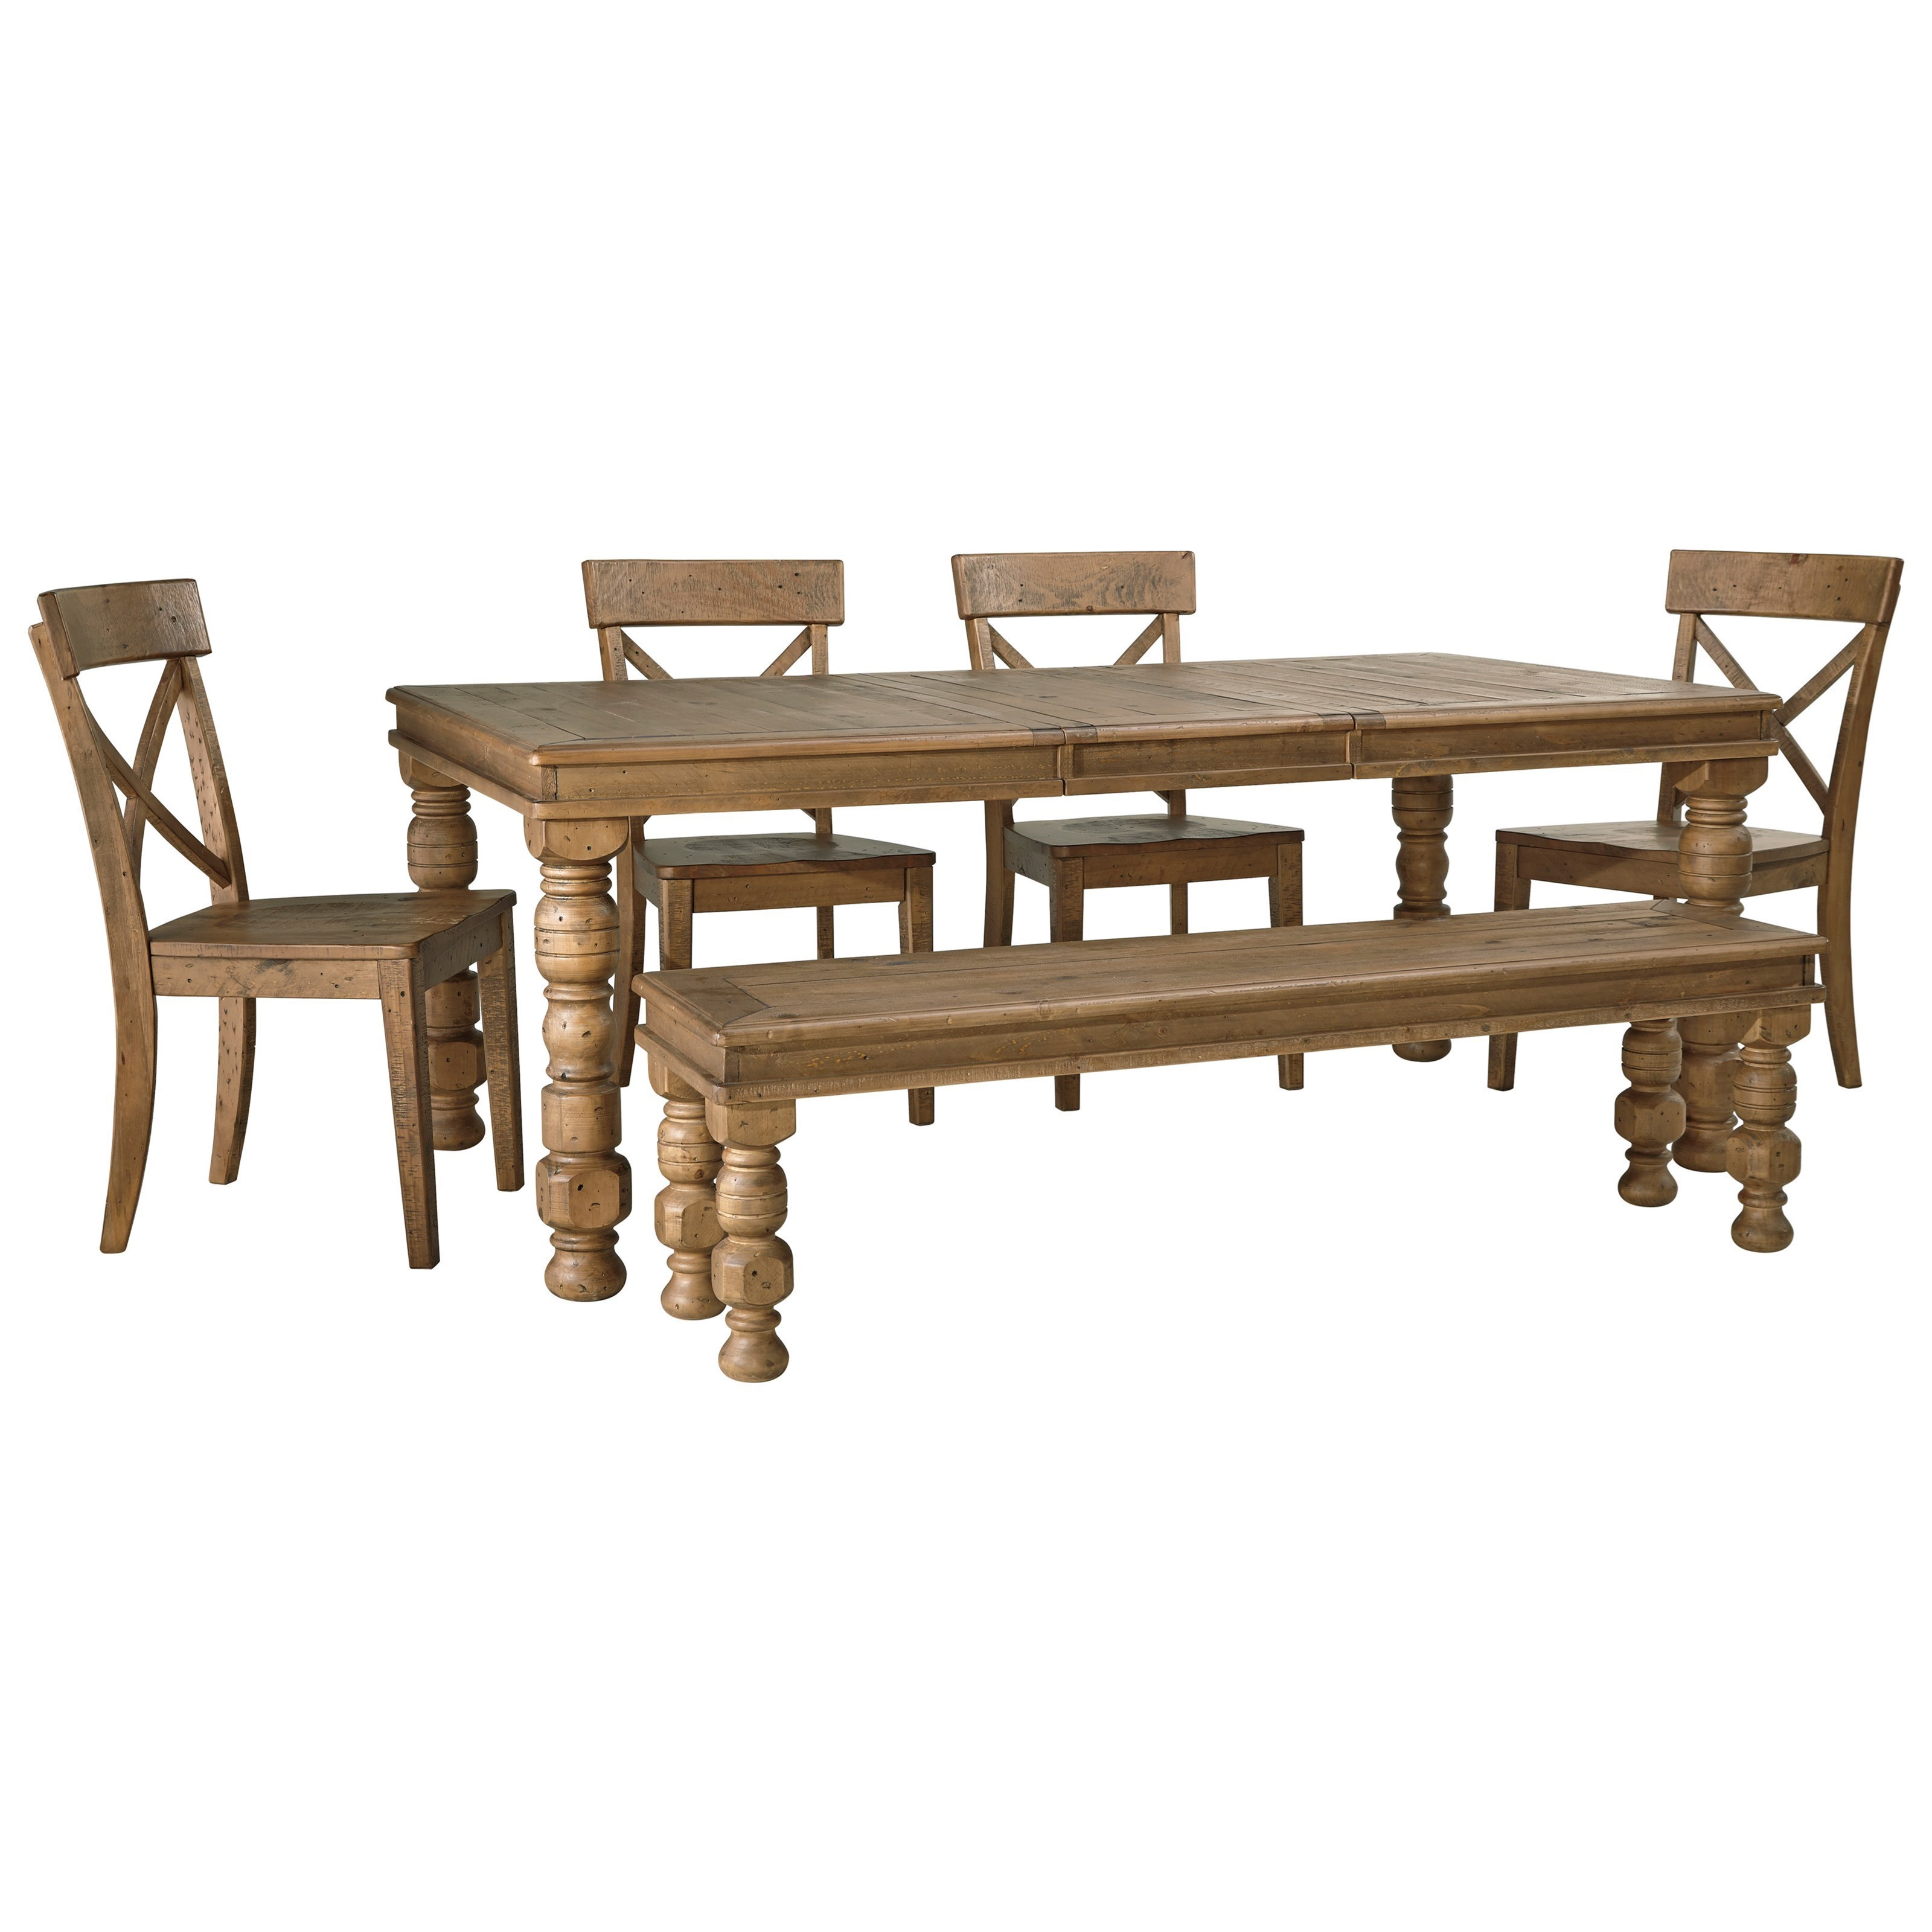 100 Ashley Dining Table With Bench Signature Design  : products2Fsignaturedesignbyashley2Fcolor2Fgerlaned659 352B4x012B00 b1jpgscalebothampwidth500ampheight500ampfsharpen25ampdown from 45.77.108.62 size 500 x 500 jpeg 29kB